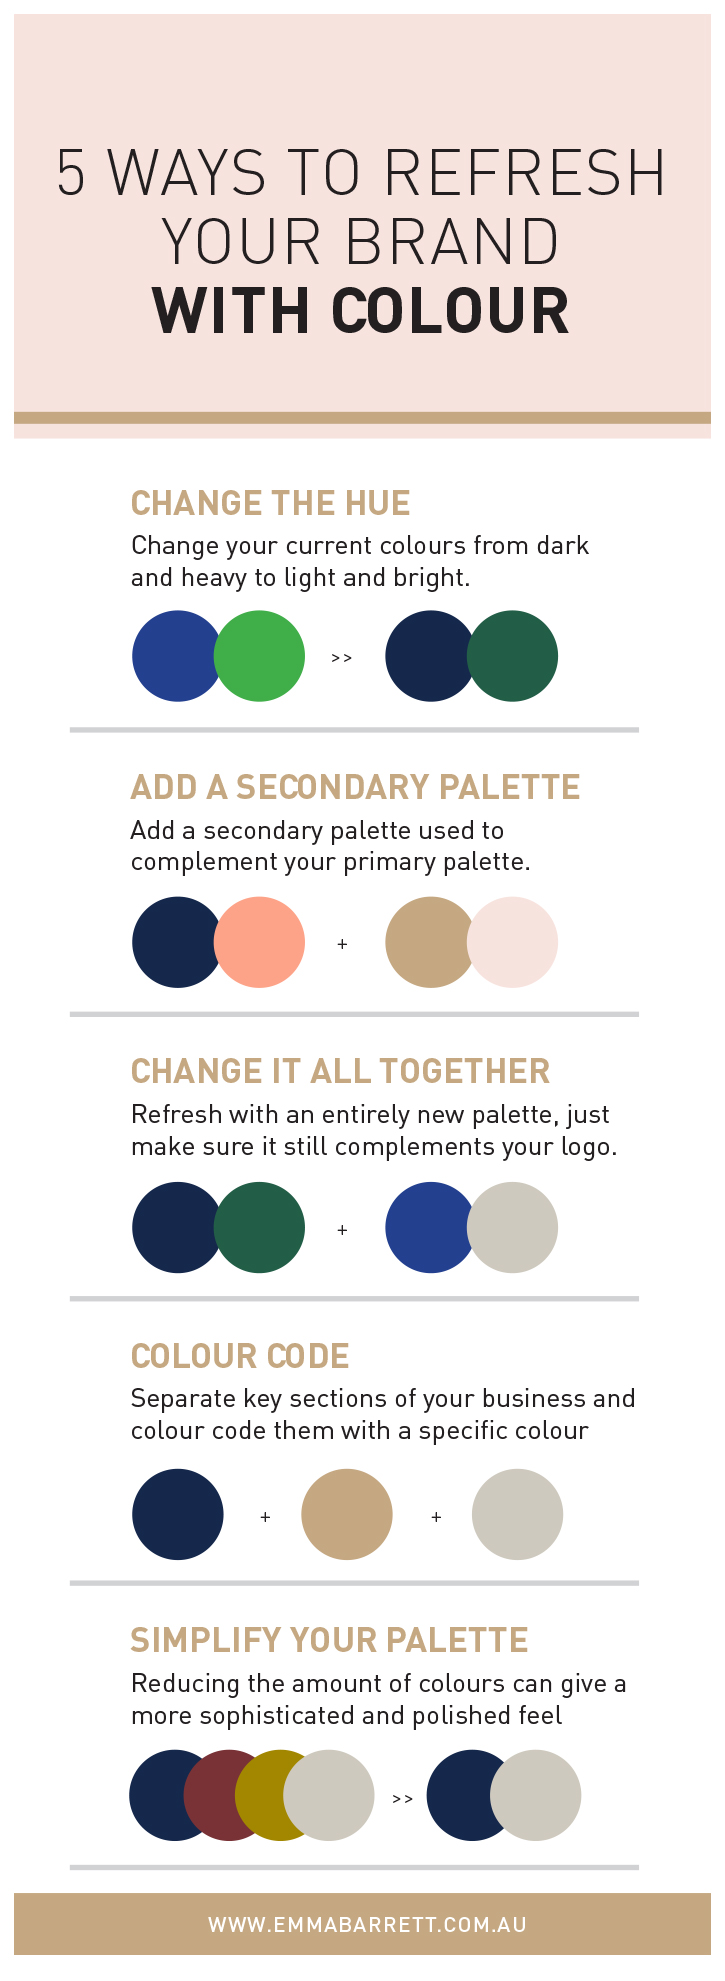 5-ways-to-refresh-with-colour-blog.jpg